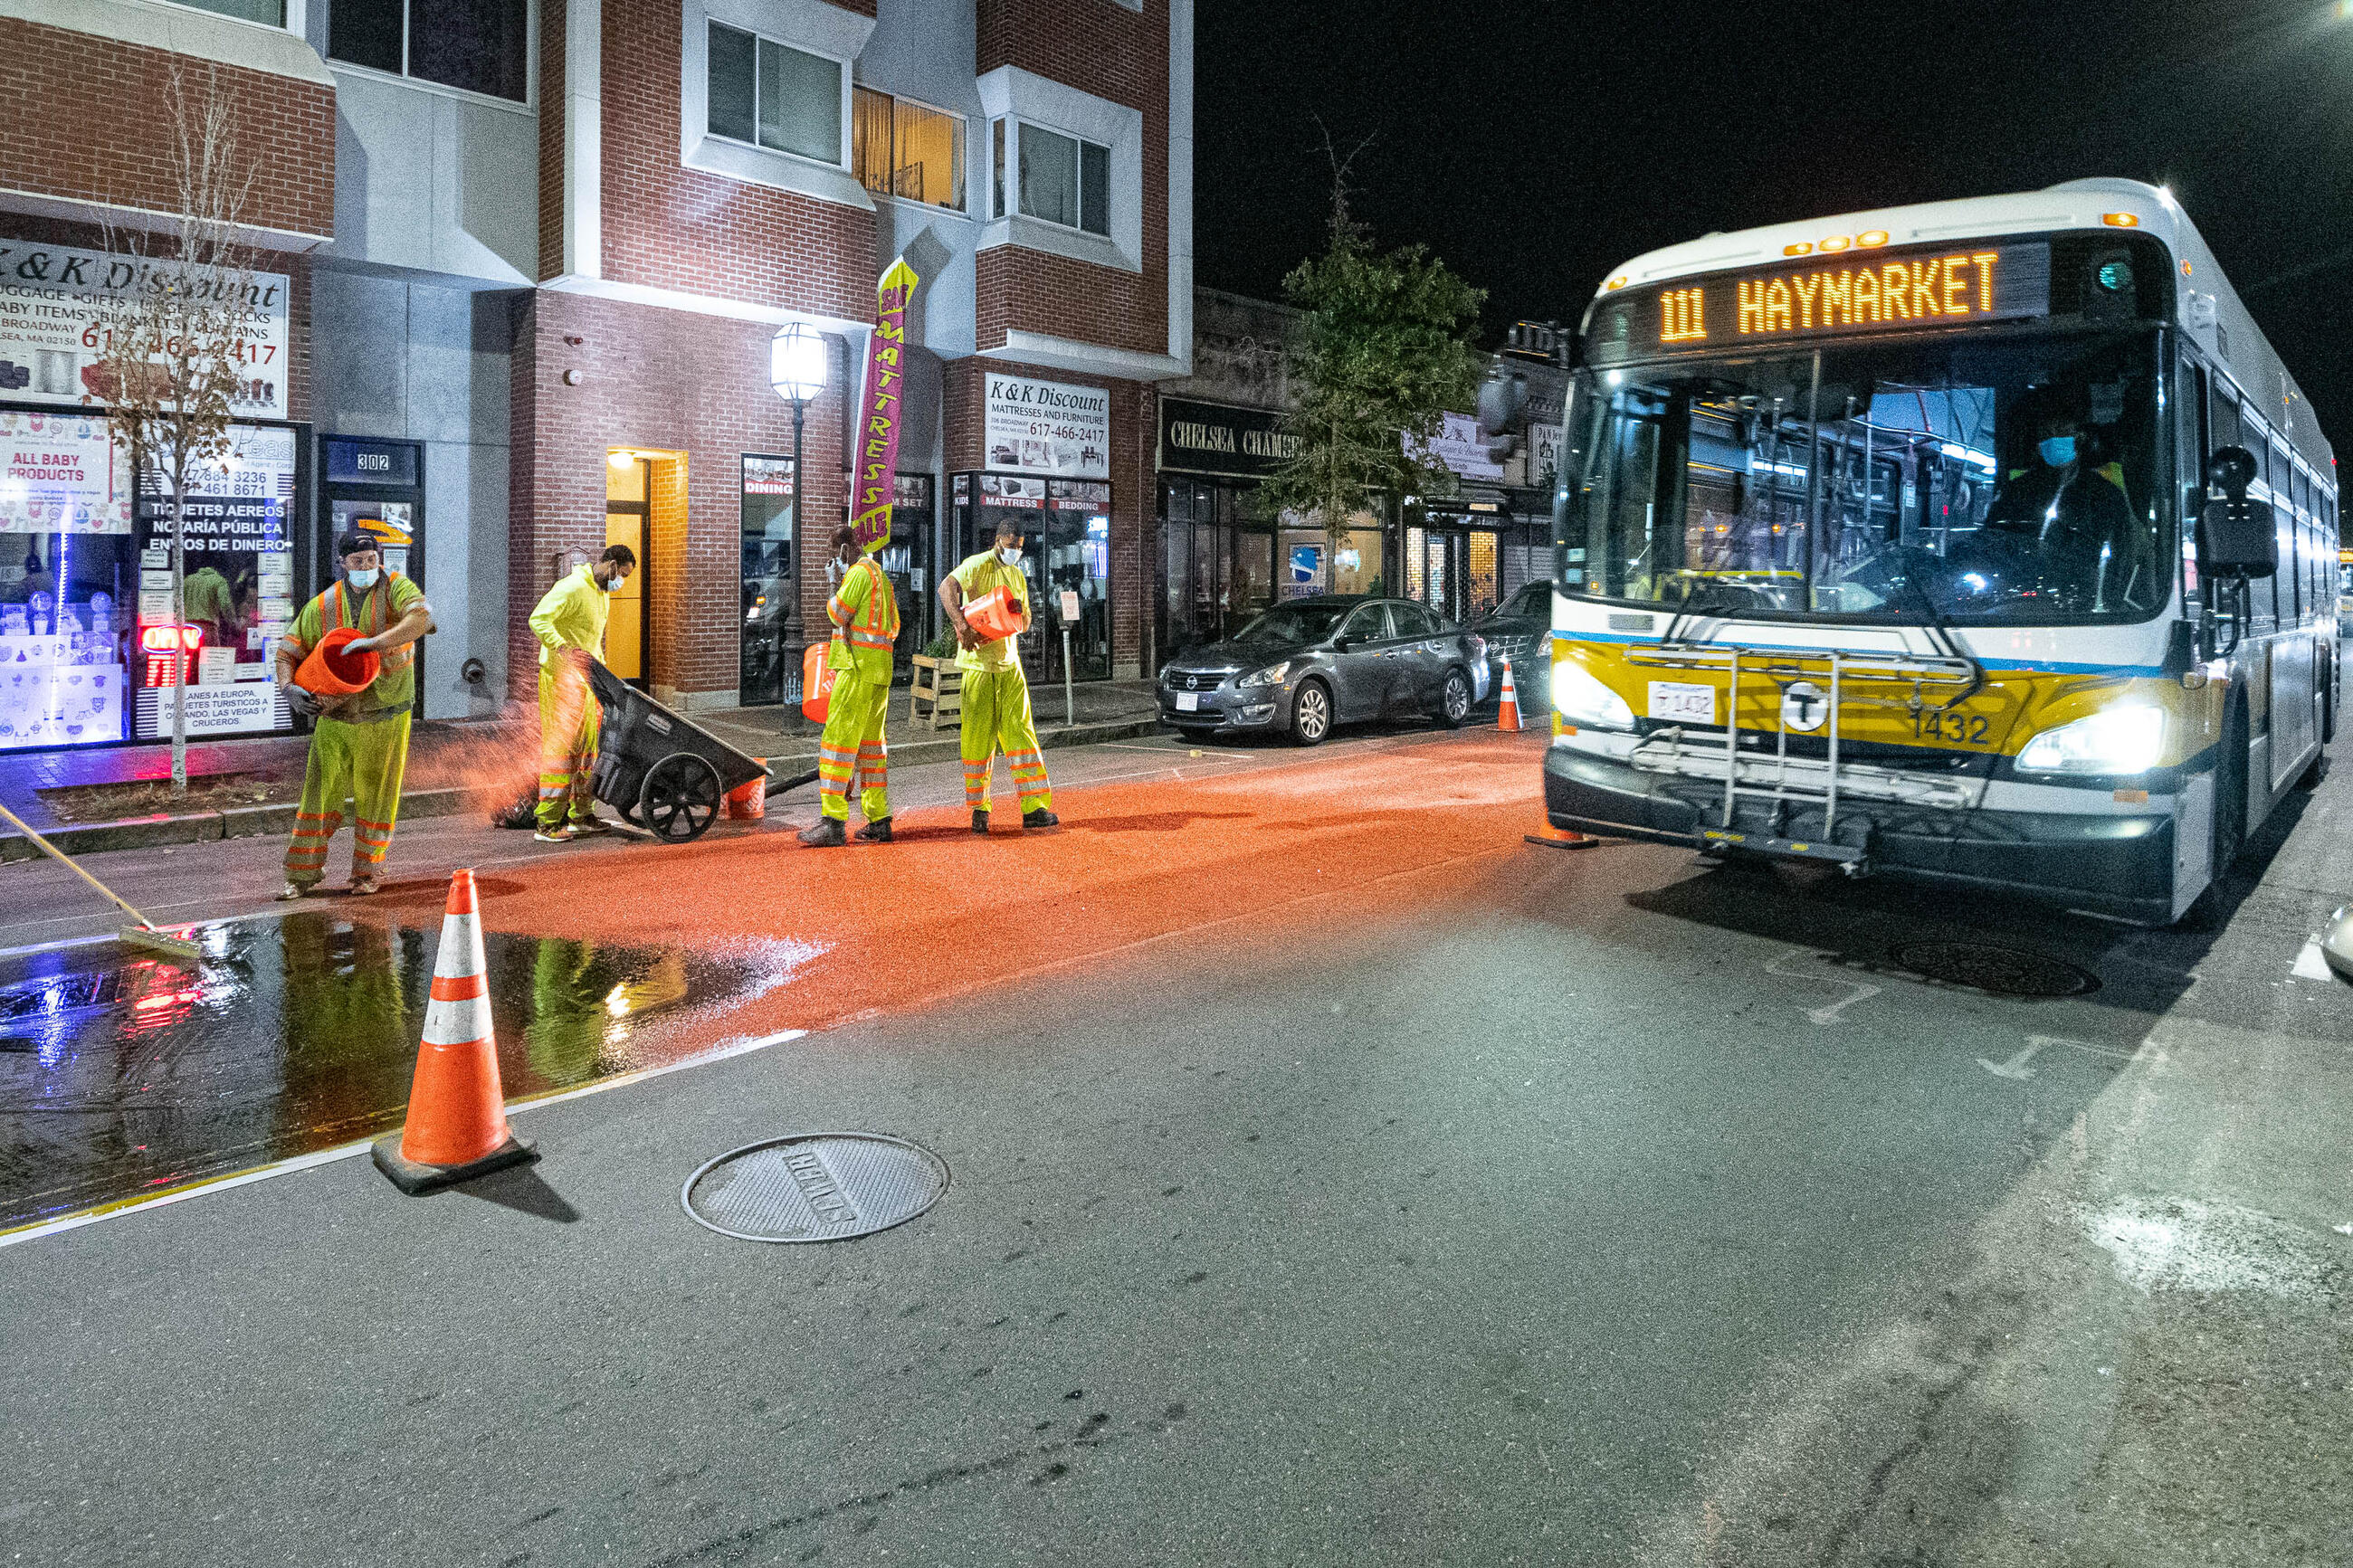 Construction crews installing bus lane markings on Broadway in Chelsea in October 2020.